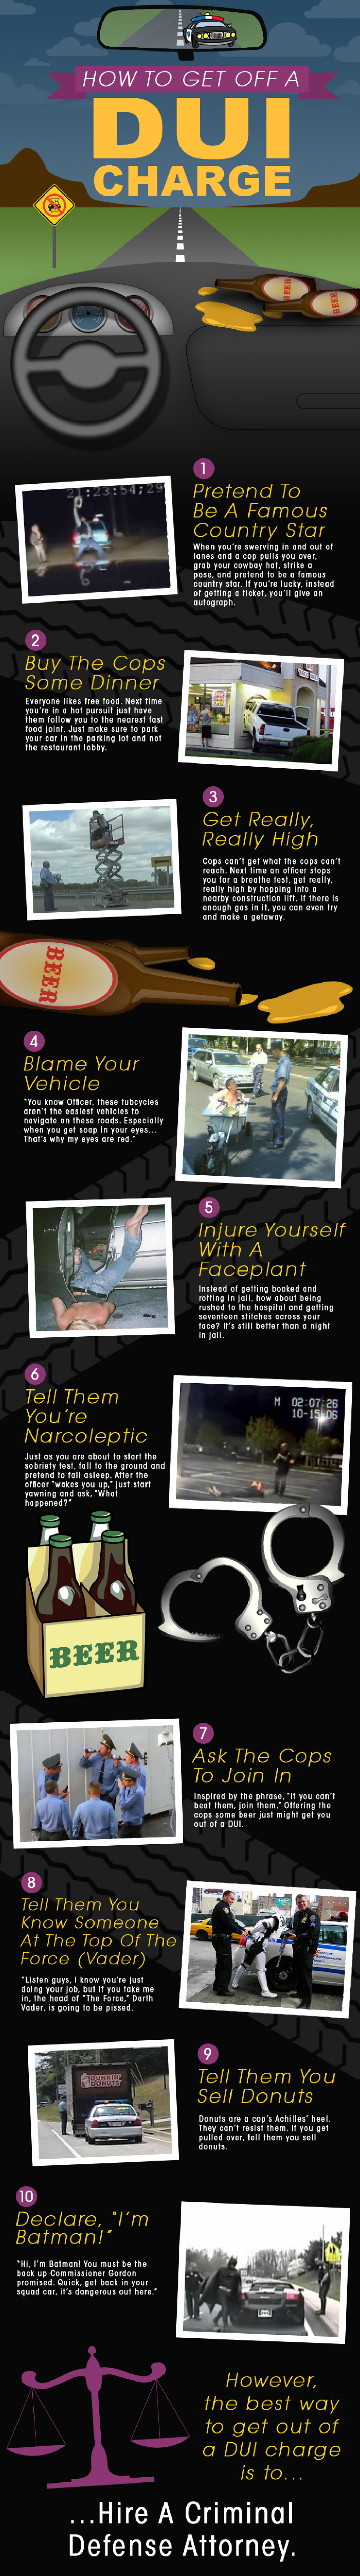 How to get off a DUI charge Infographic